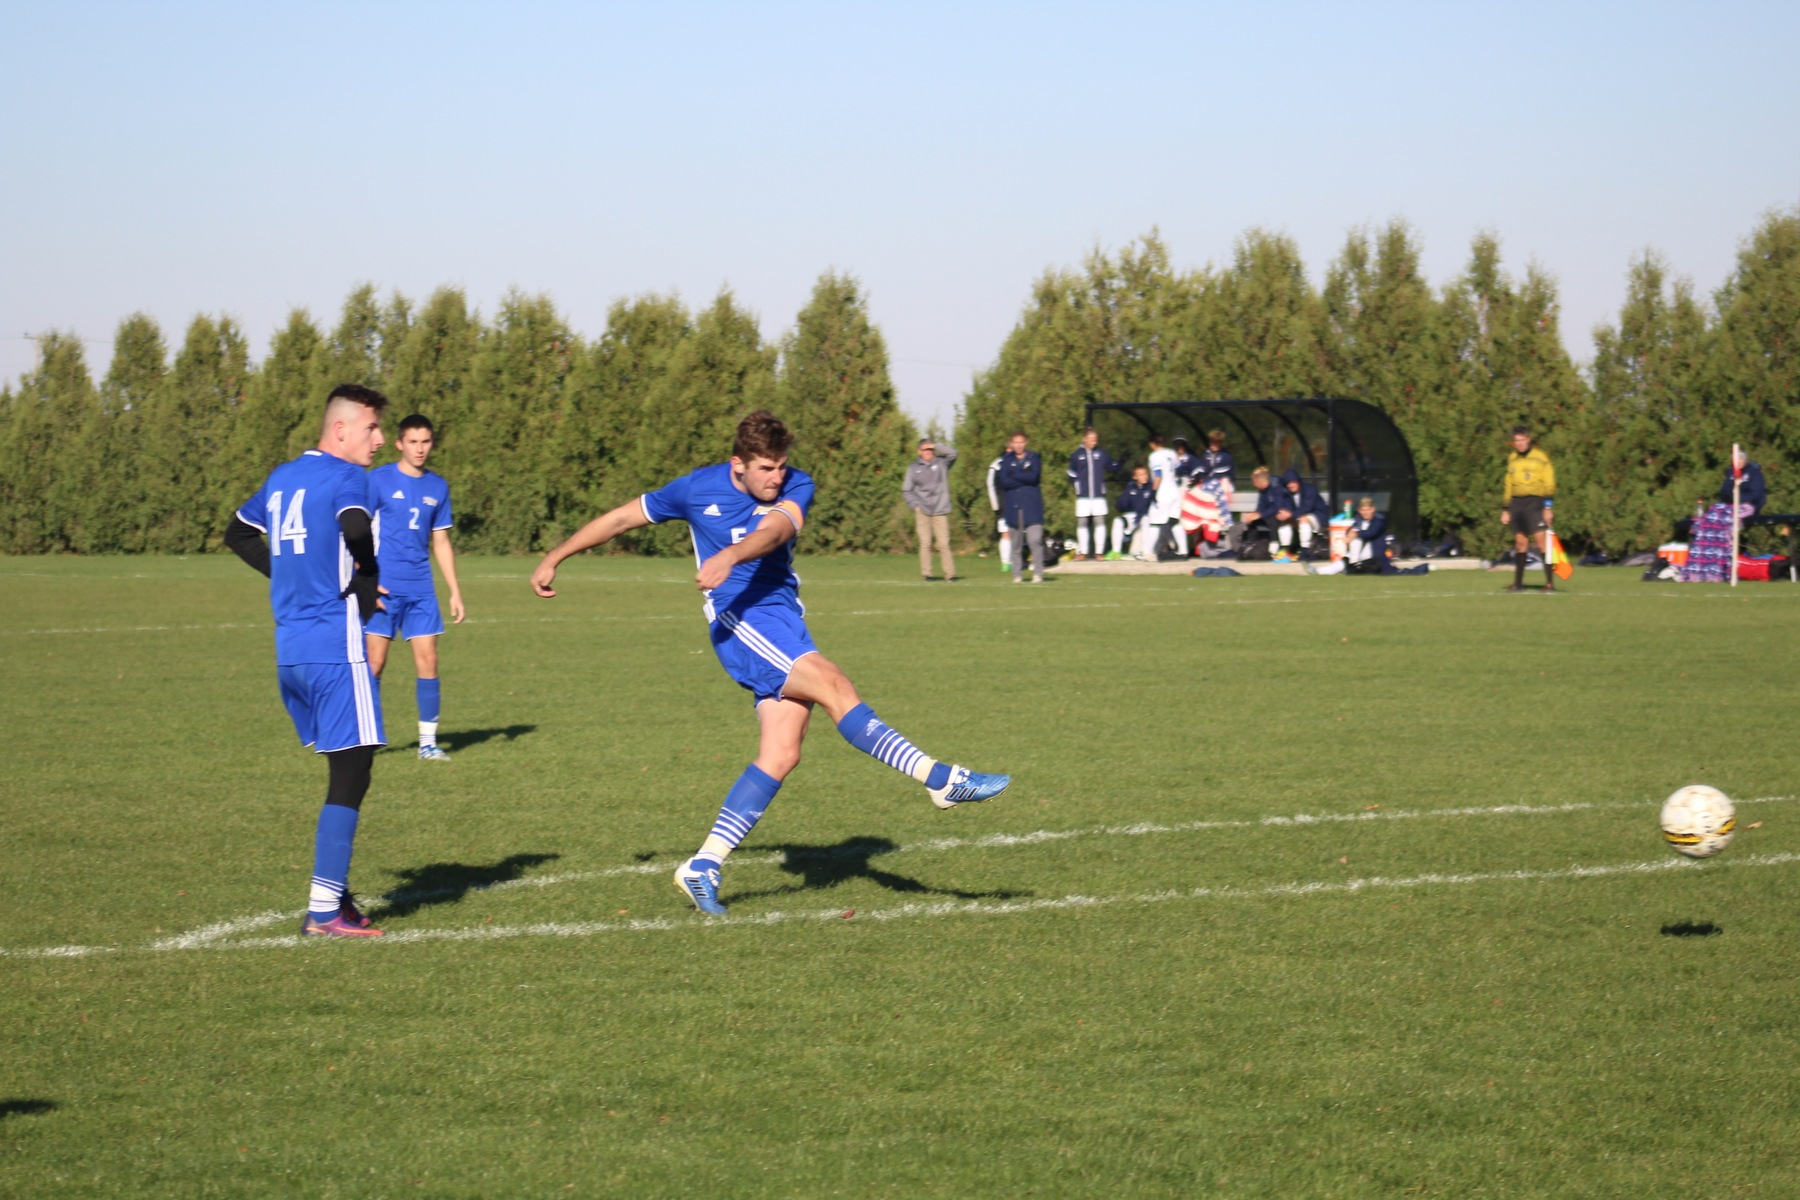 Niall Coulthard scores NIACC's goal on an indirect kick in the second half.